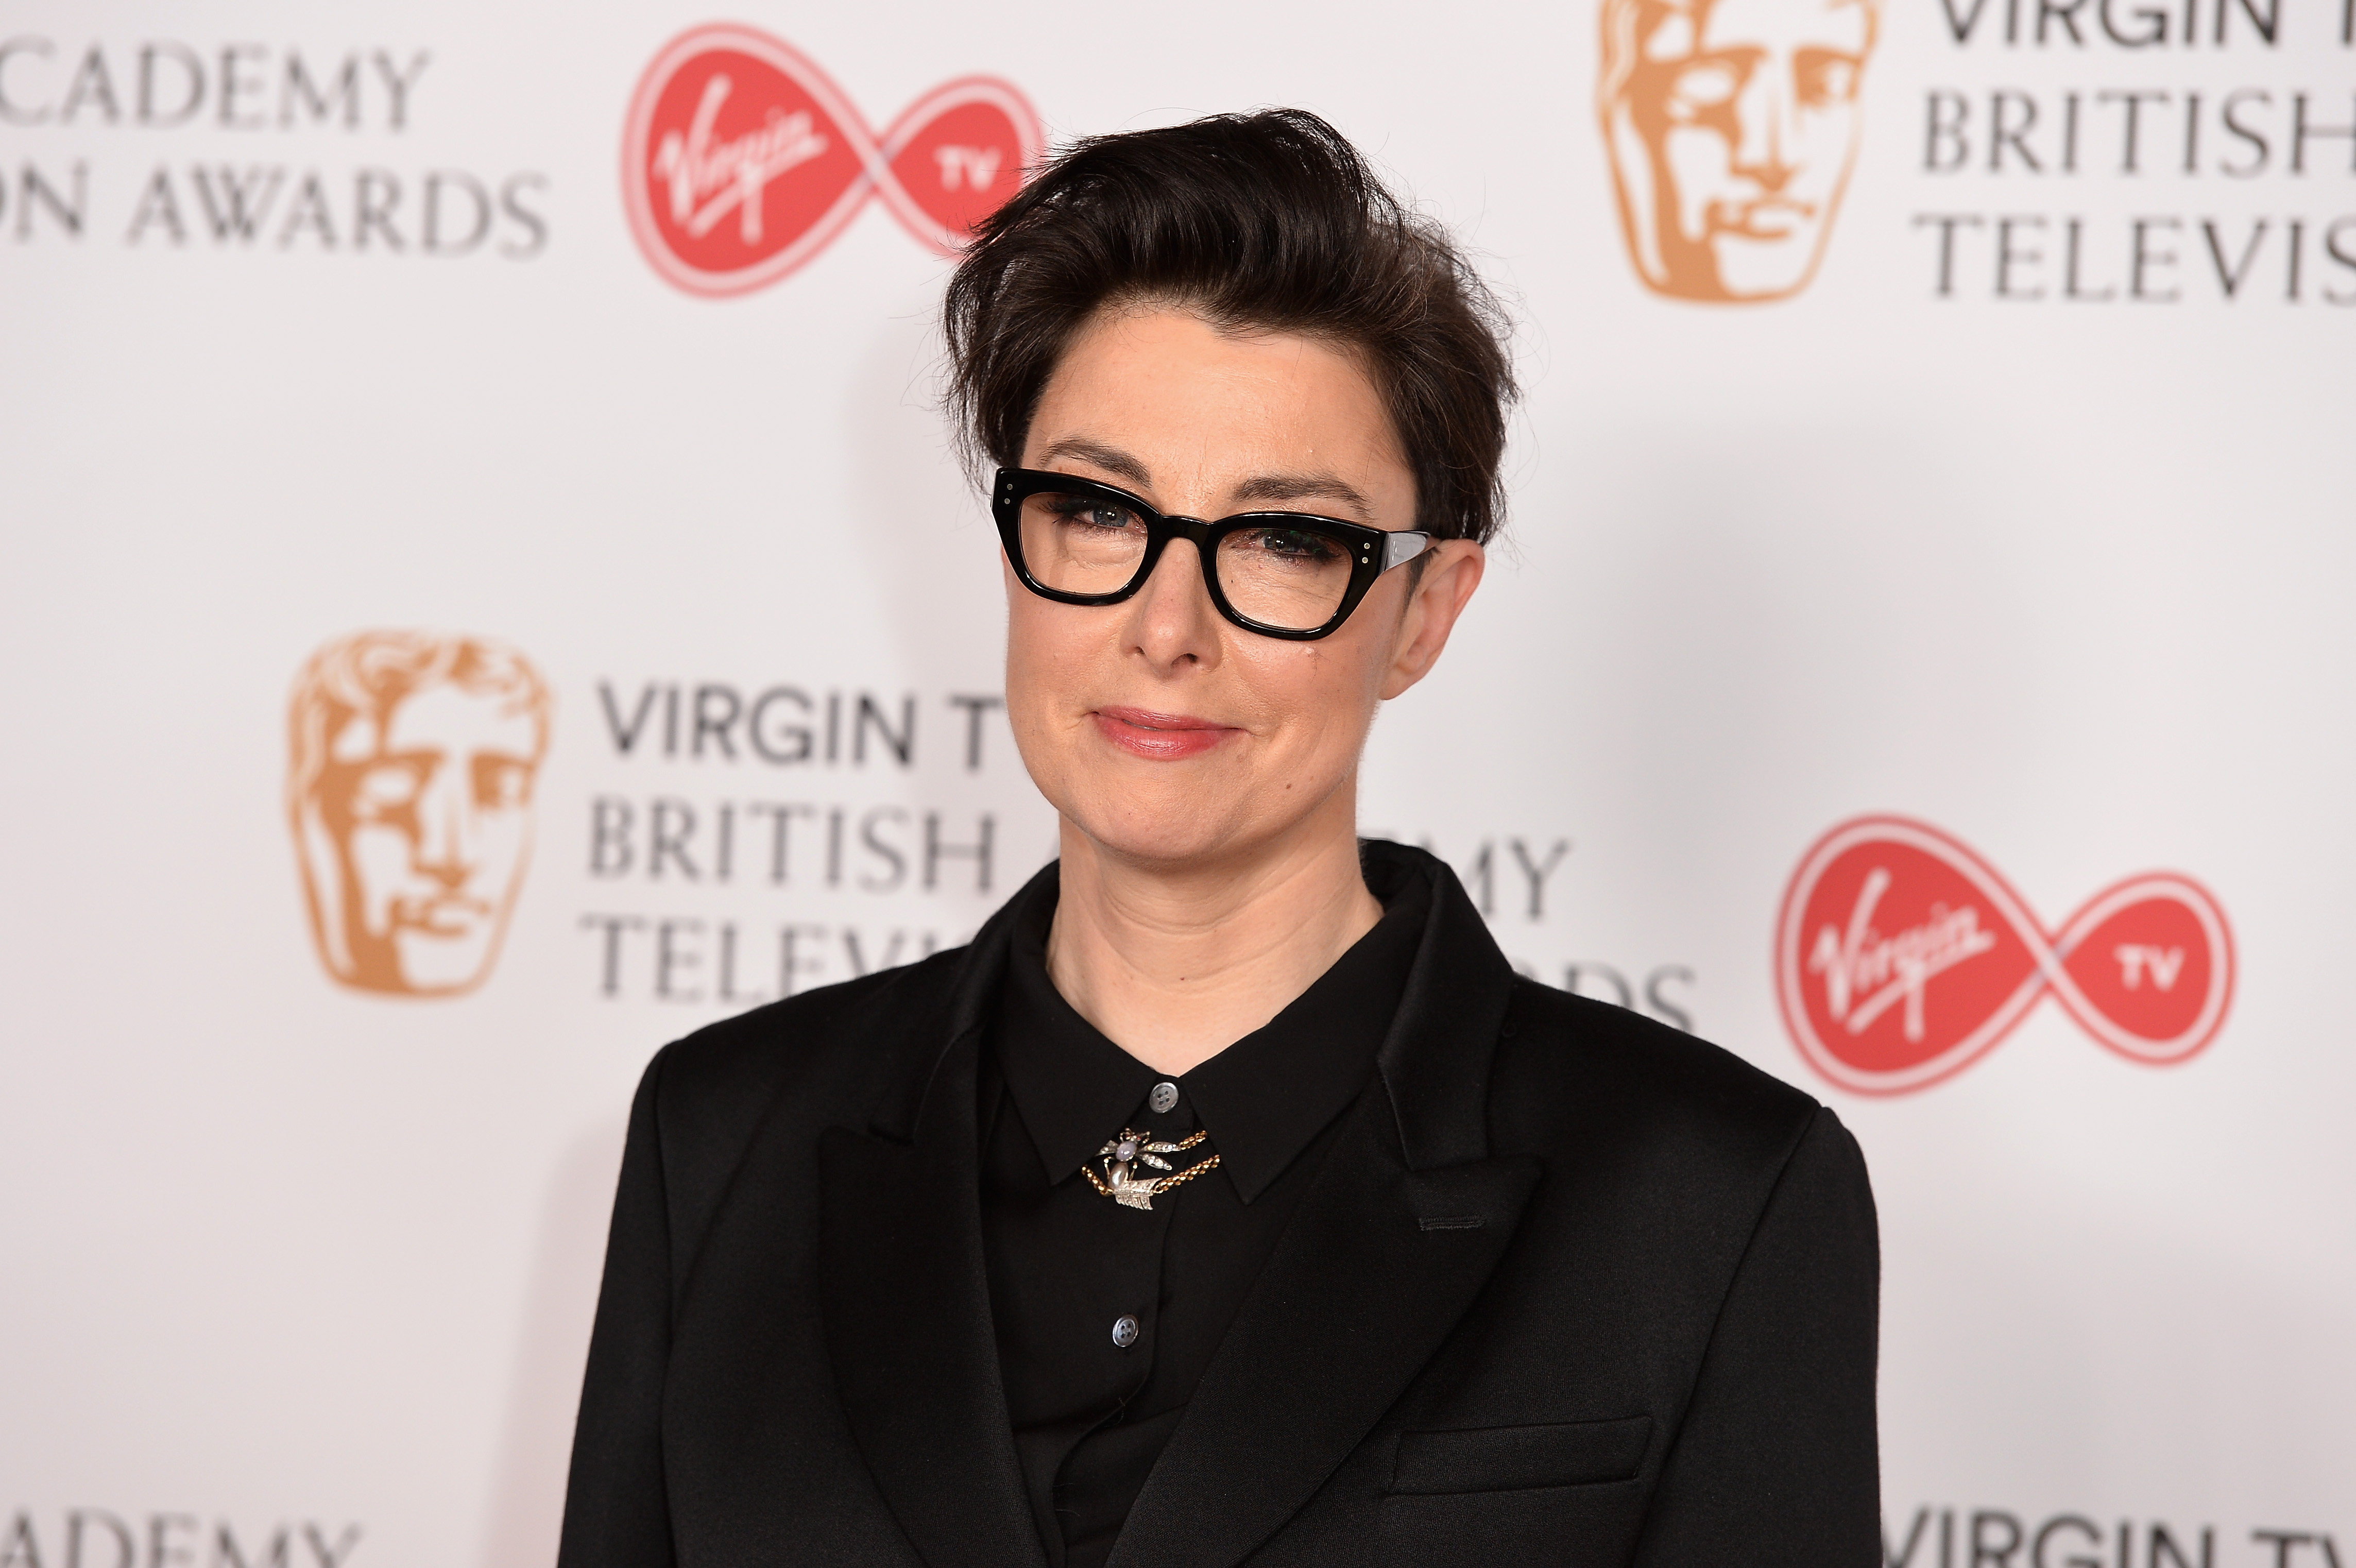 Sue Perkins 'genuinely thrilled' to return as host of TV Baftas